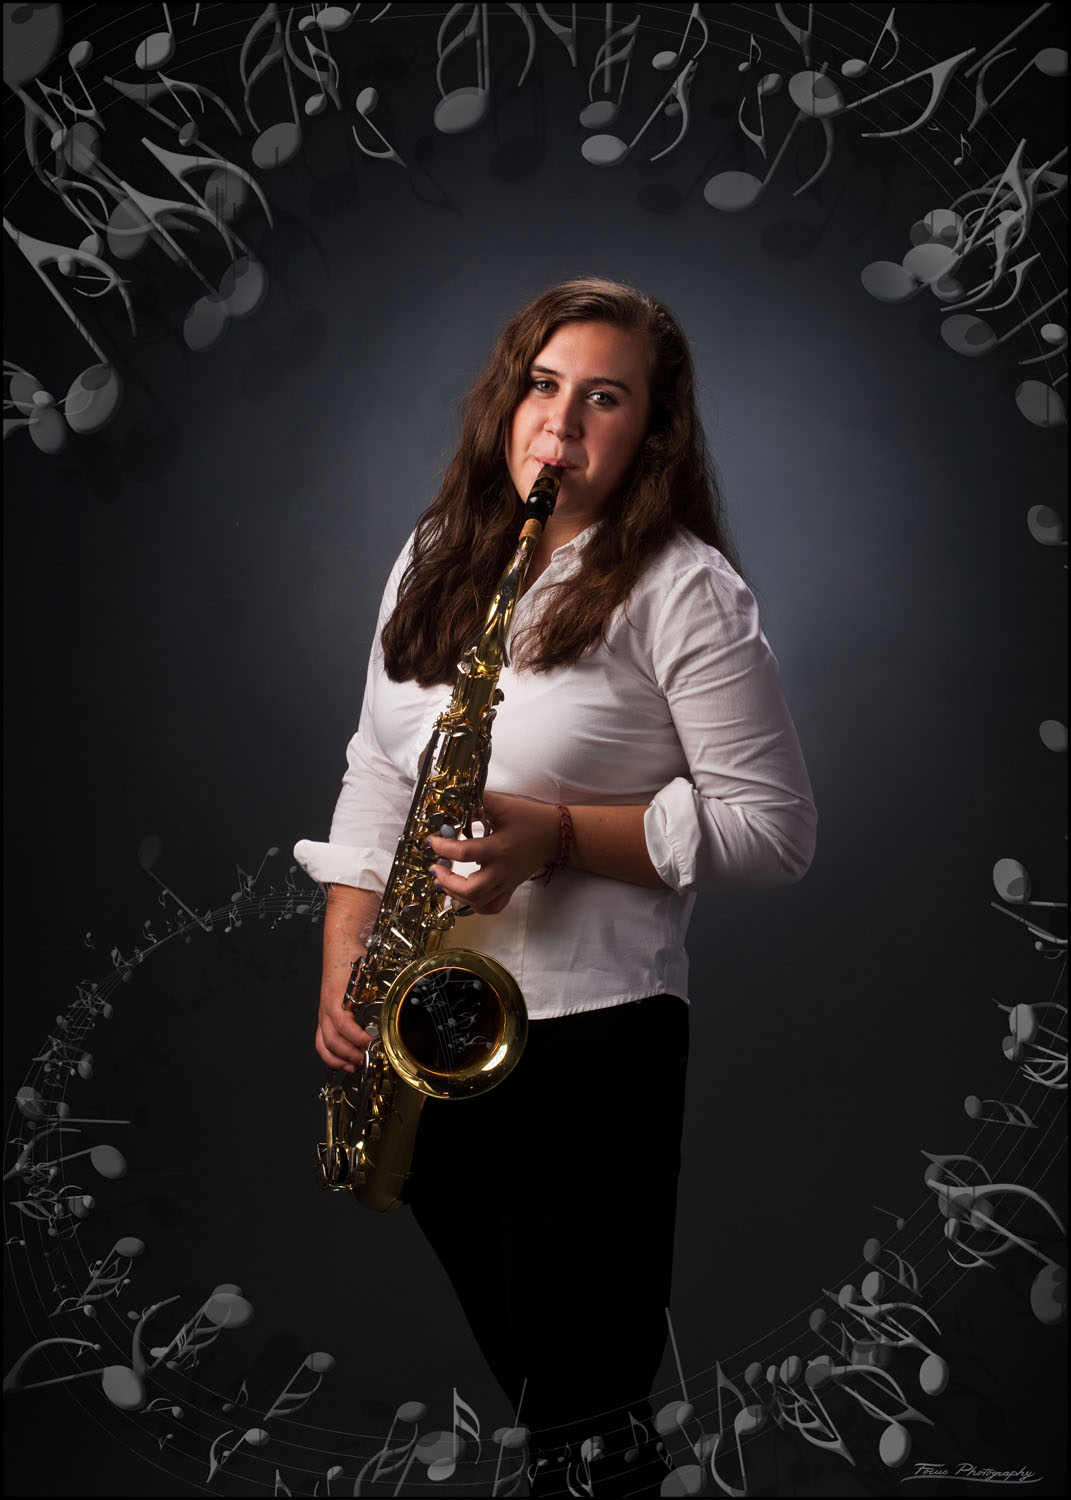 musician playing saxophone with notes flying out of it for senior photo in studio